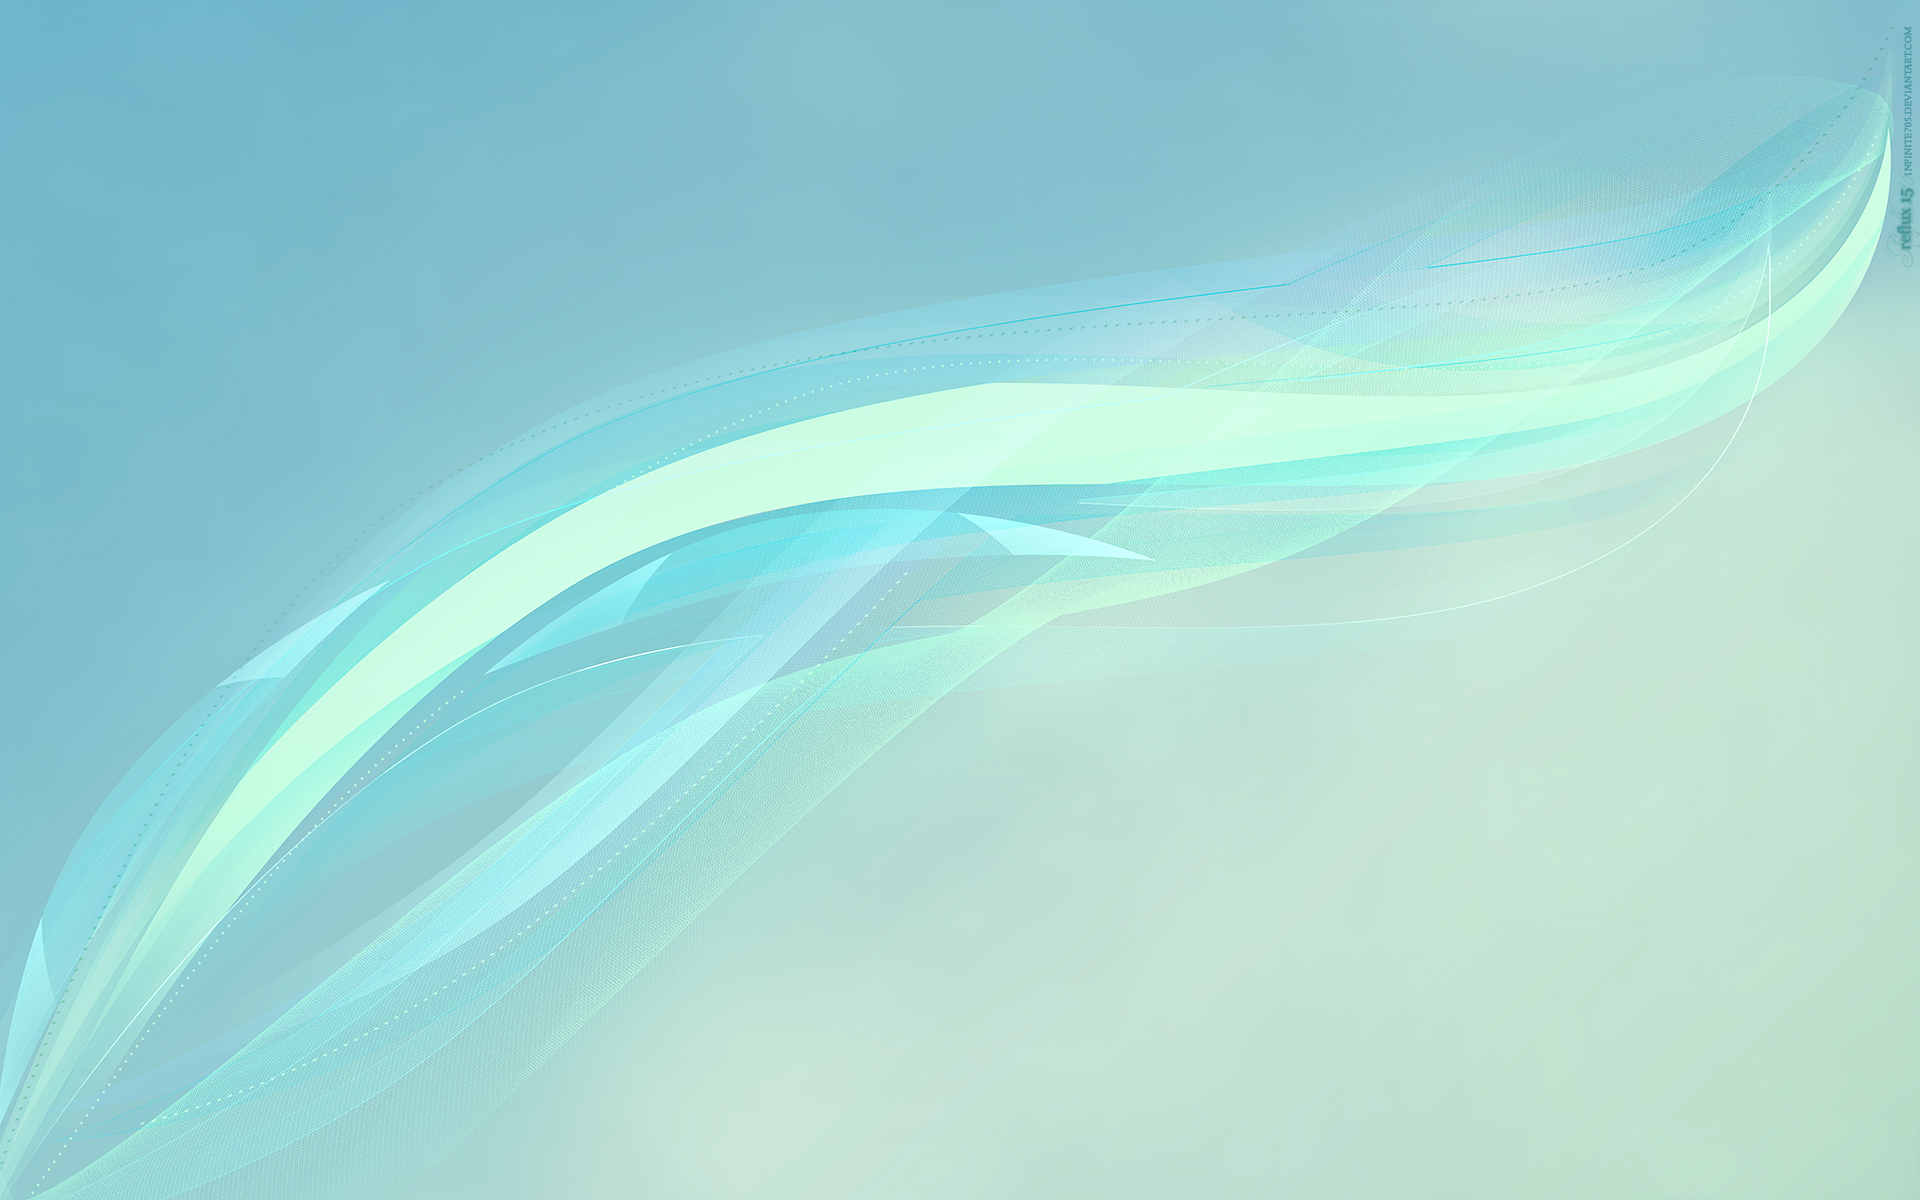 turquoise abstract computer wallpaper - photo #1